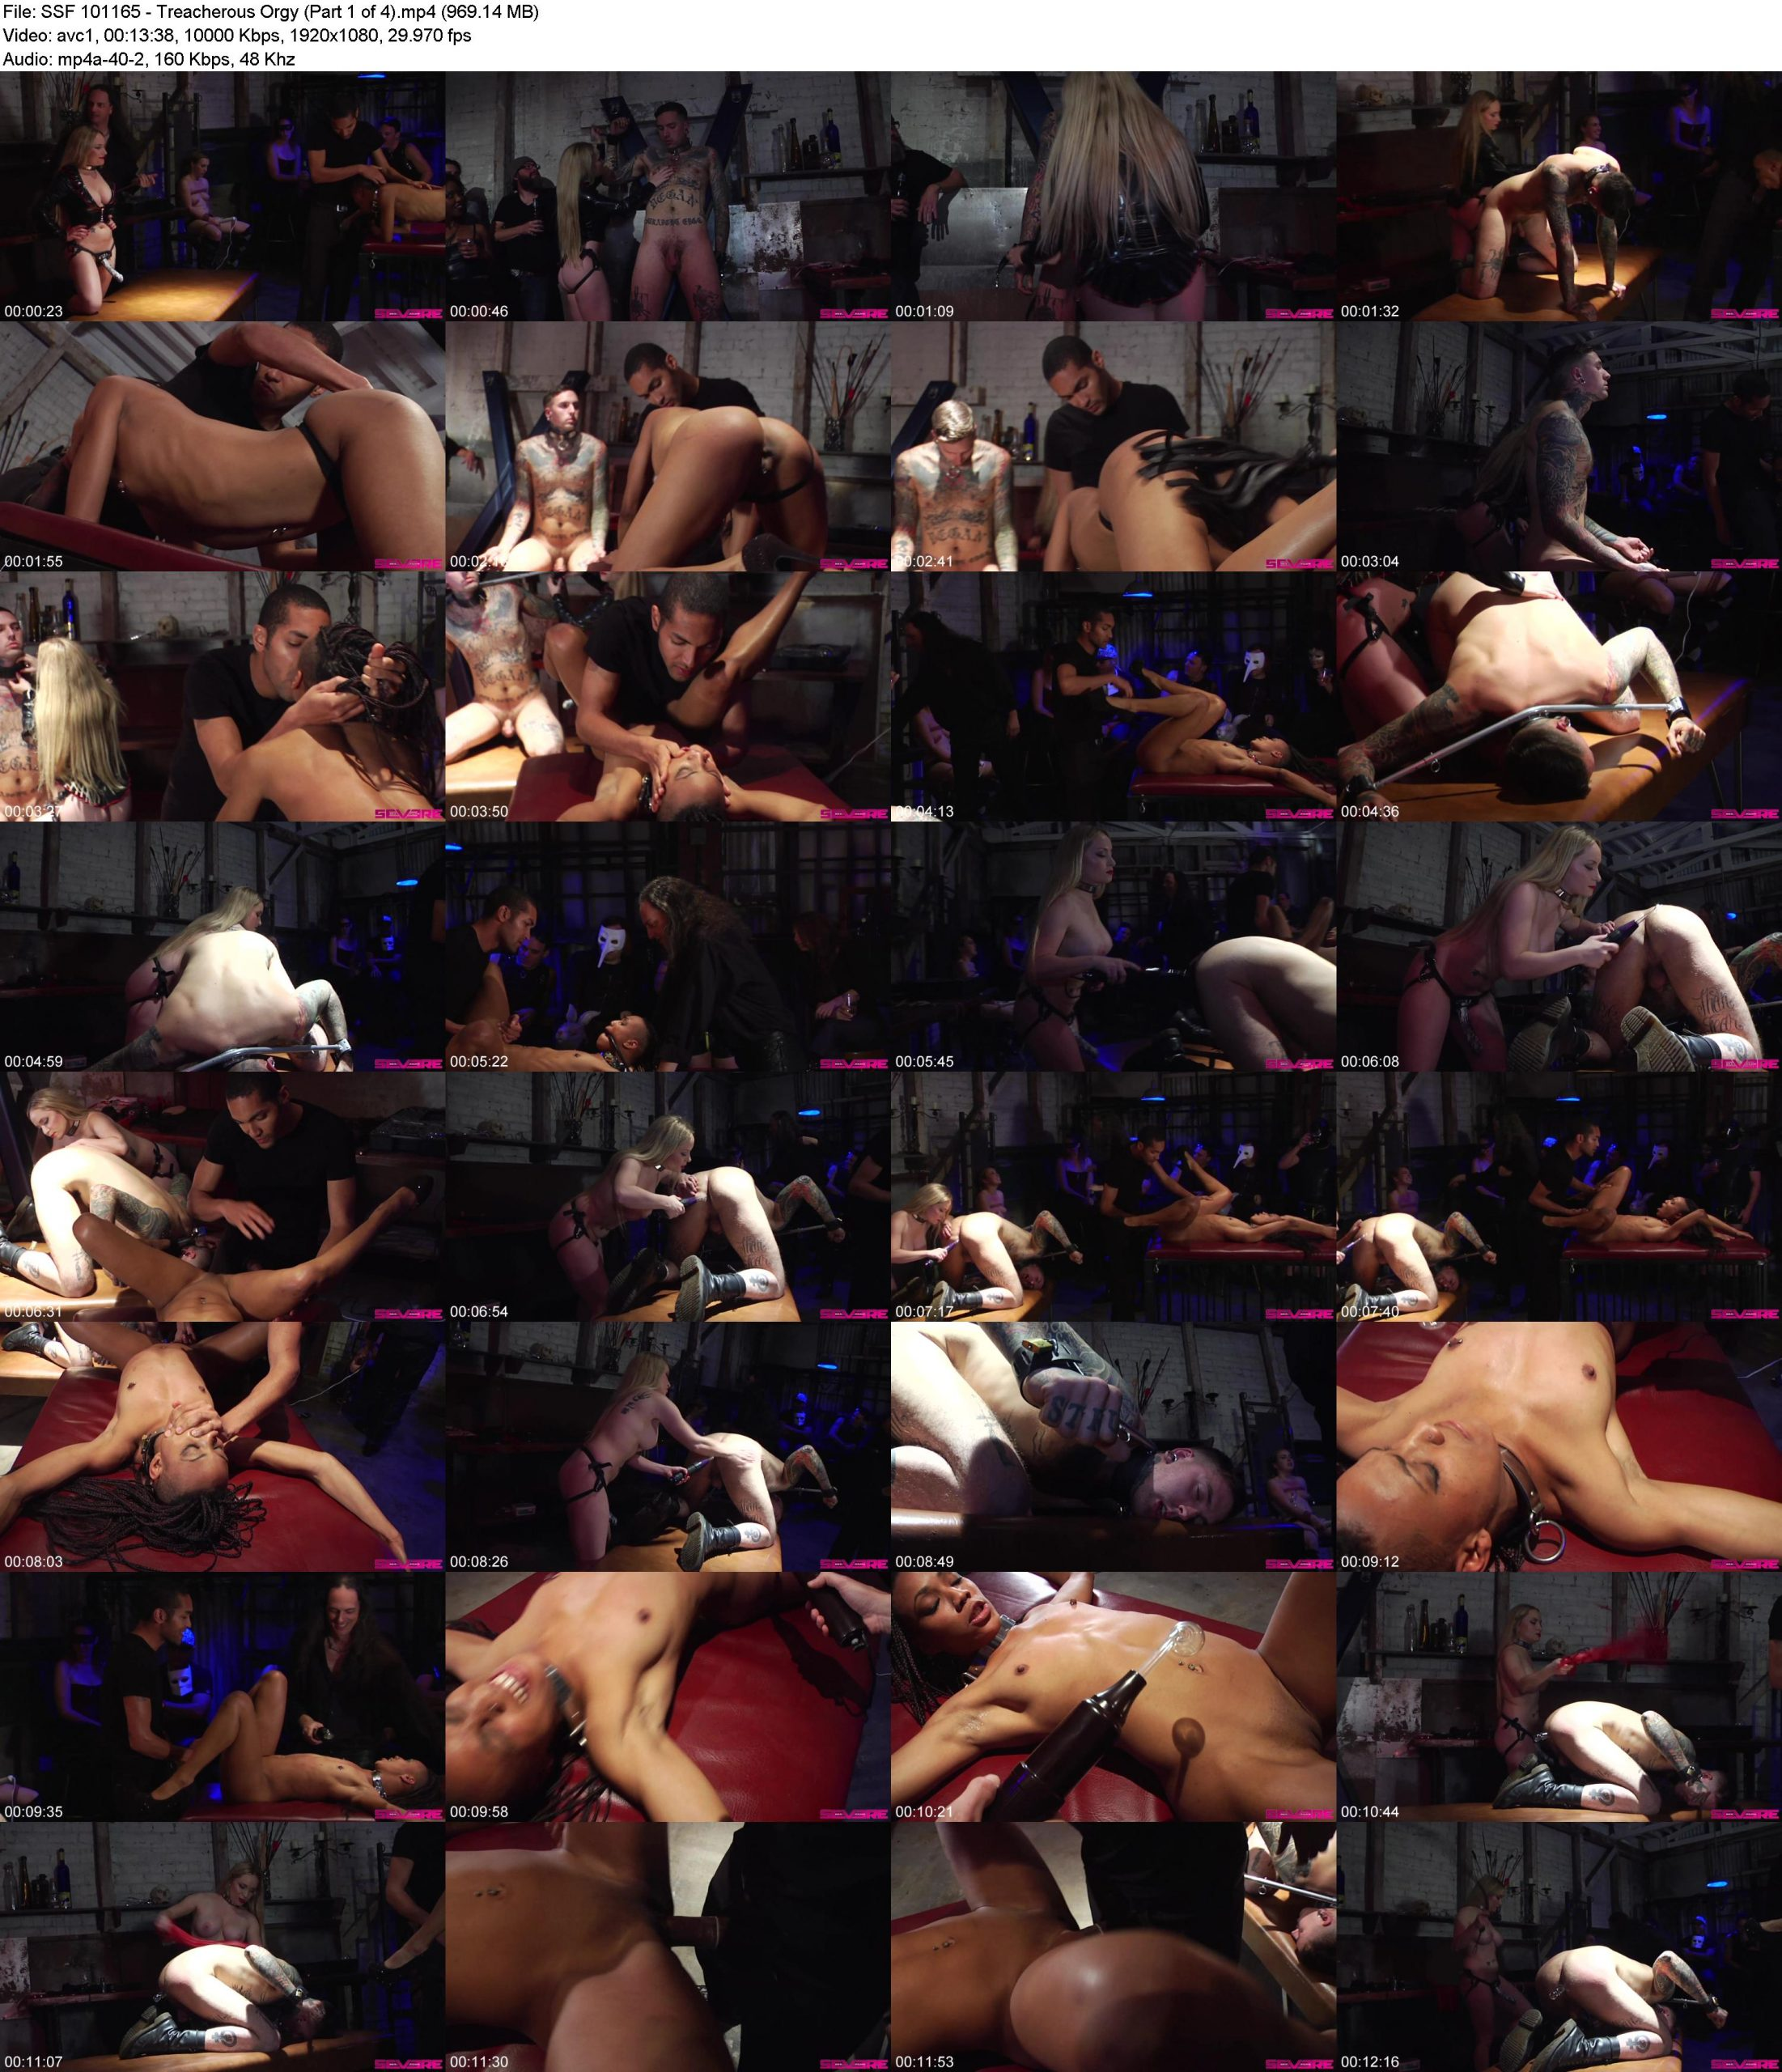 September 3, 2020 – Aiden Starr, Ruckus, Mickey Mod, Nikki Darling, ProVillain/Treacherous Orgy (…